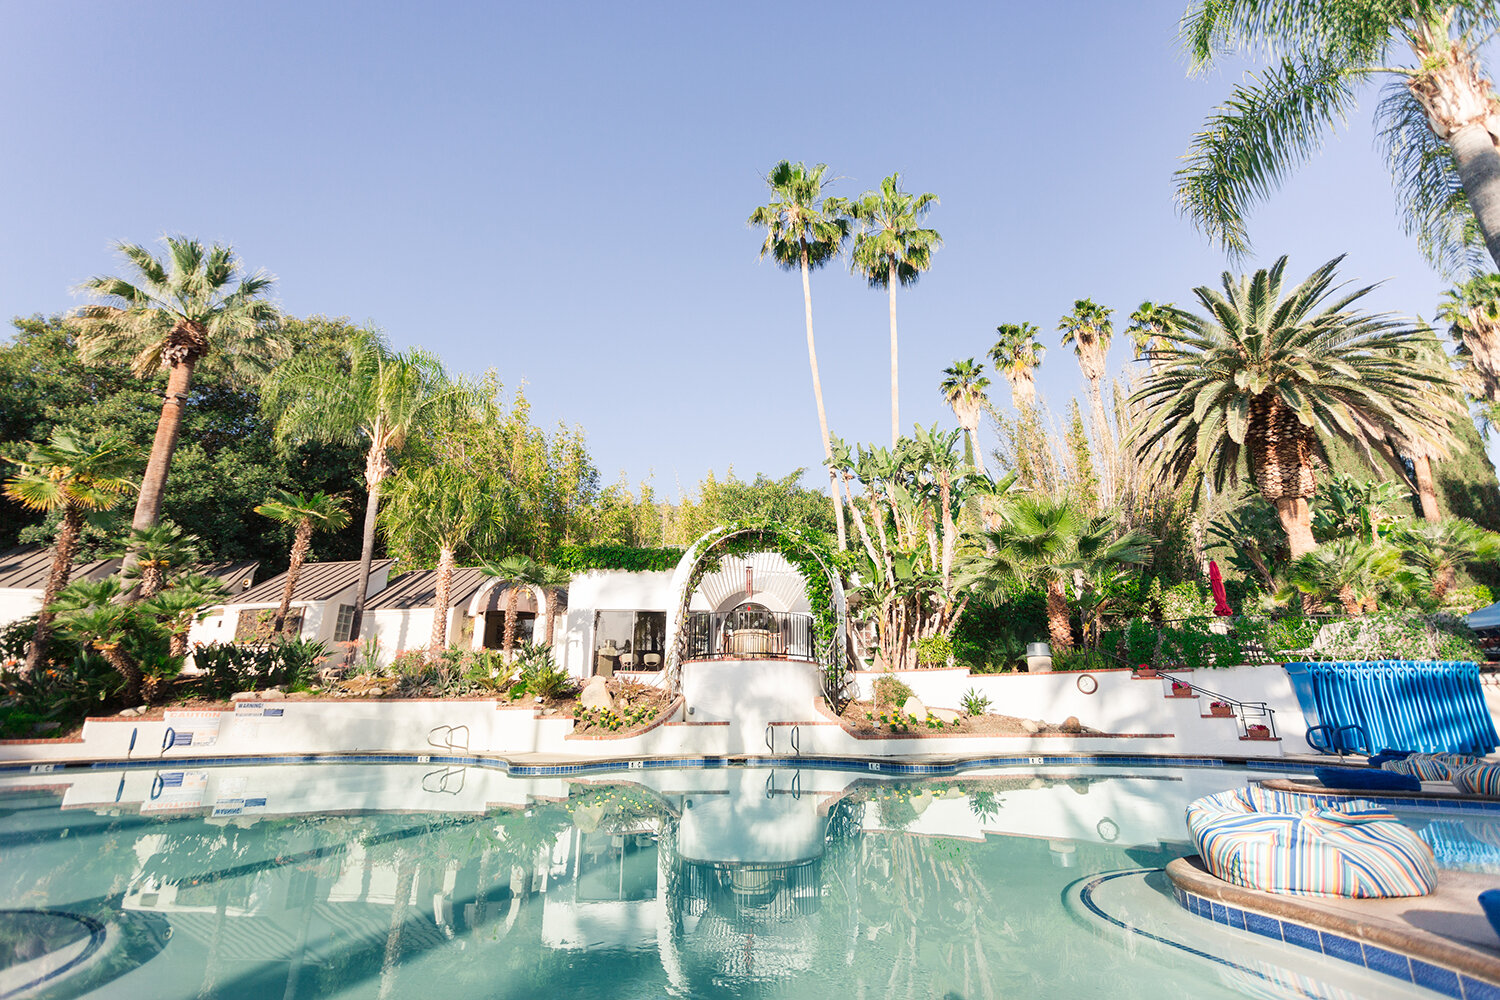 Glen Ivy Hot Springs lies sheltered across 12 lush acres and features 19 therapeutic pools and more.